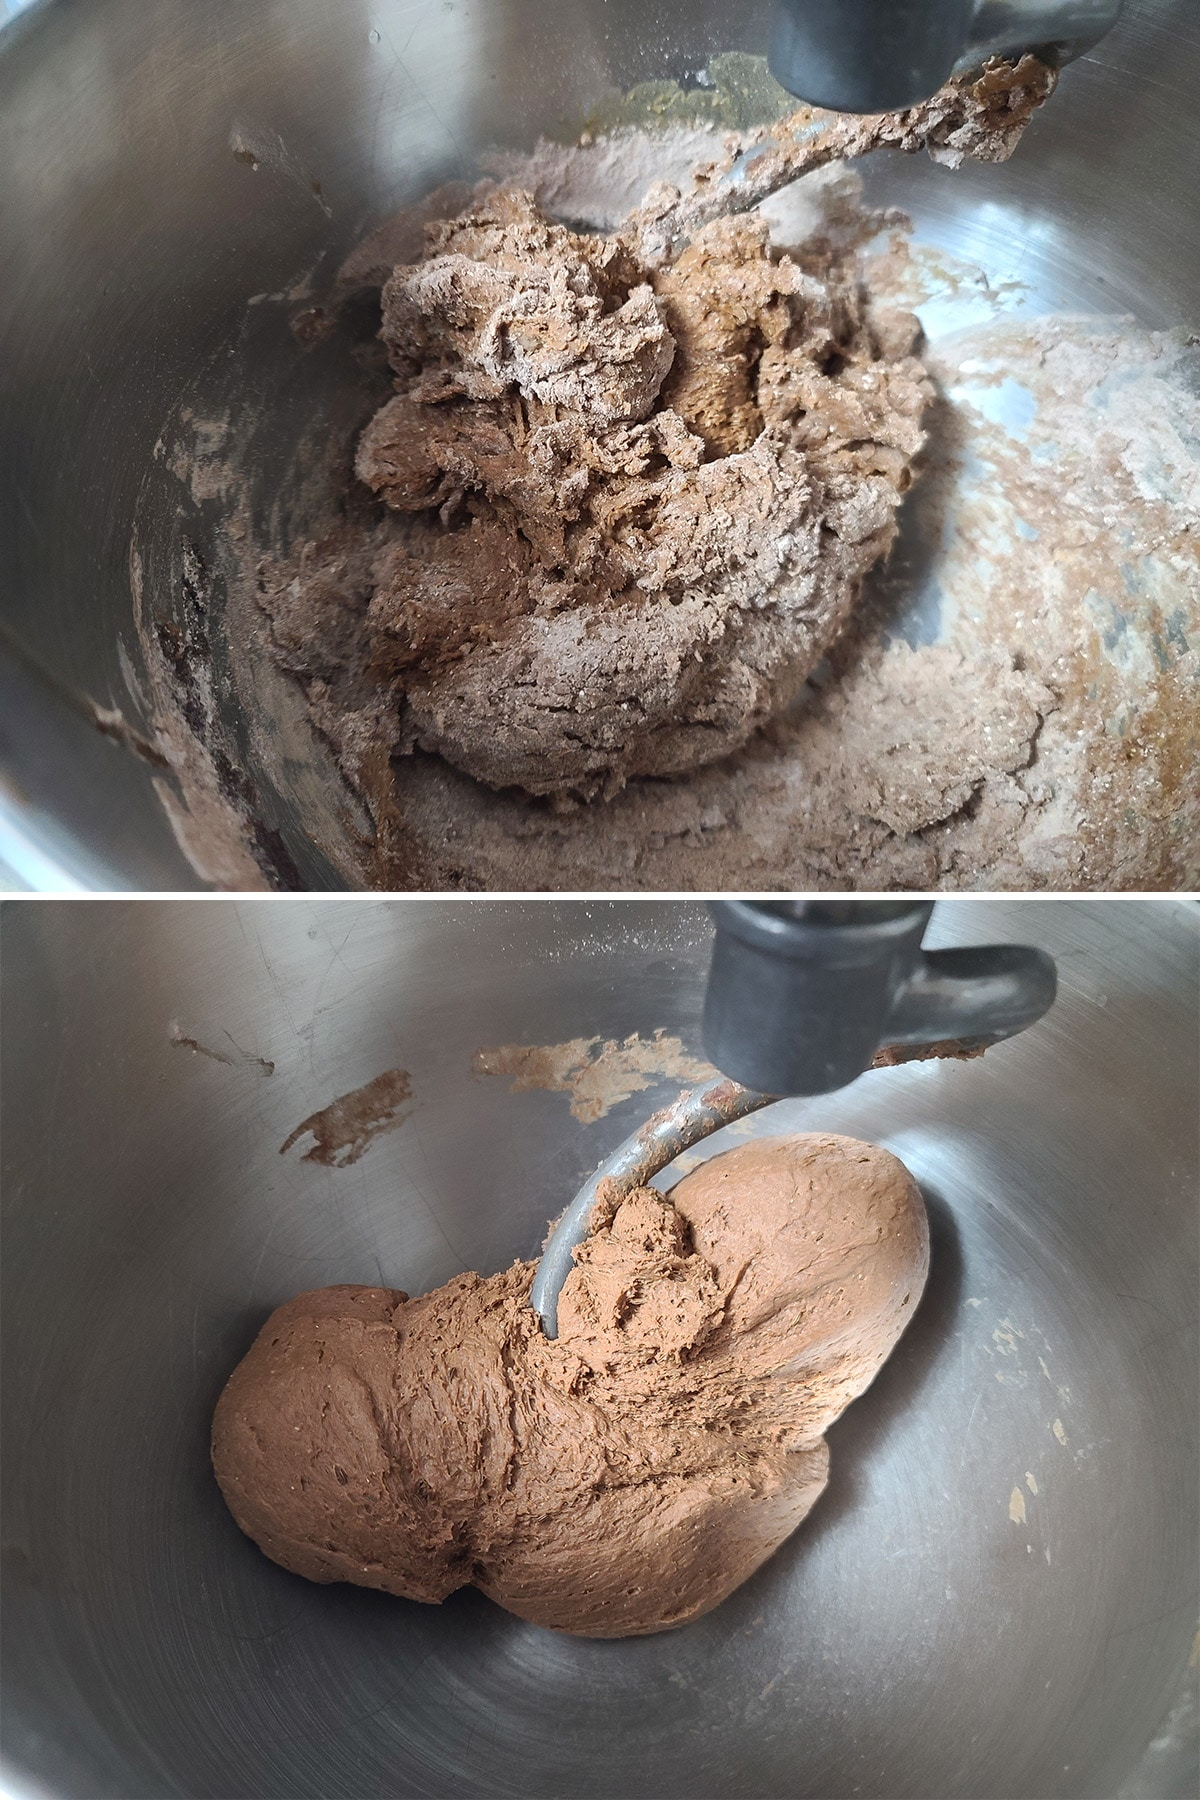 A two part image showing the dough as a rough dough, and after it's been kneaded into a smooth dough.